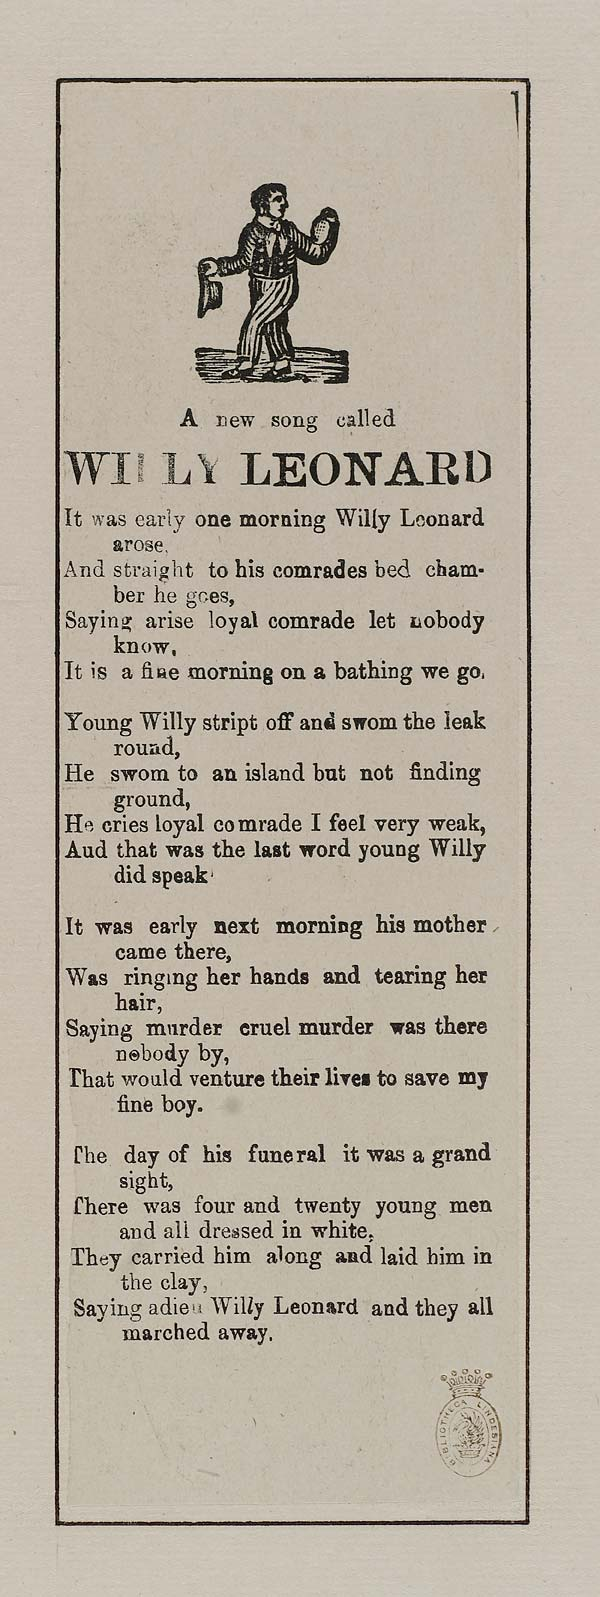 (12) New song called Willy Leonard